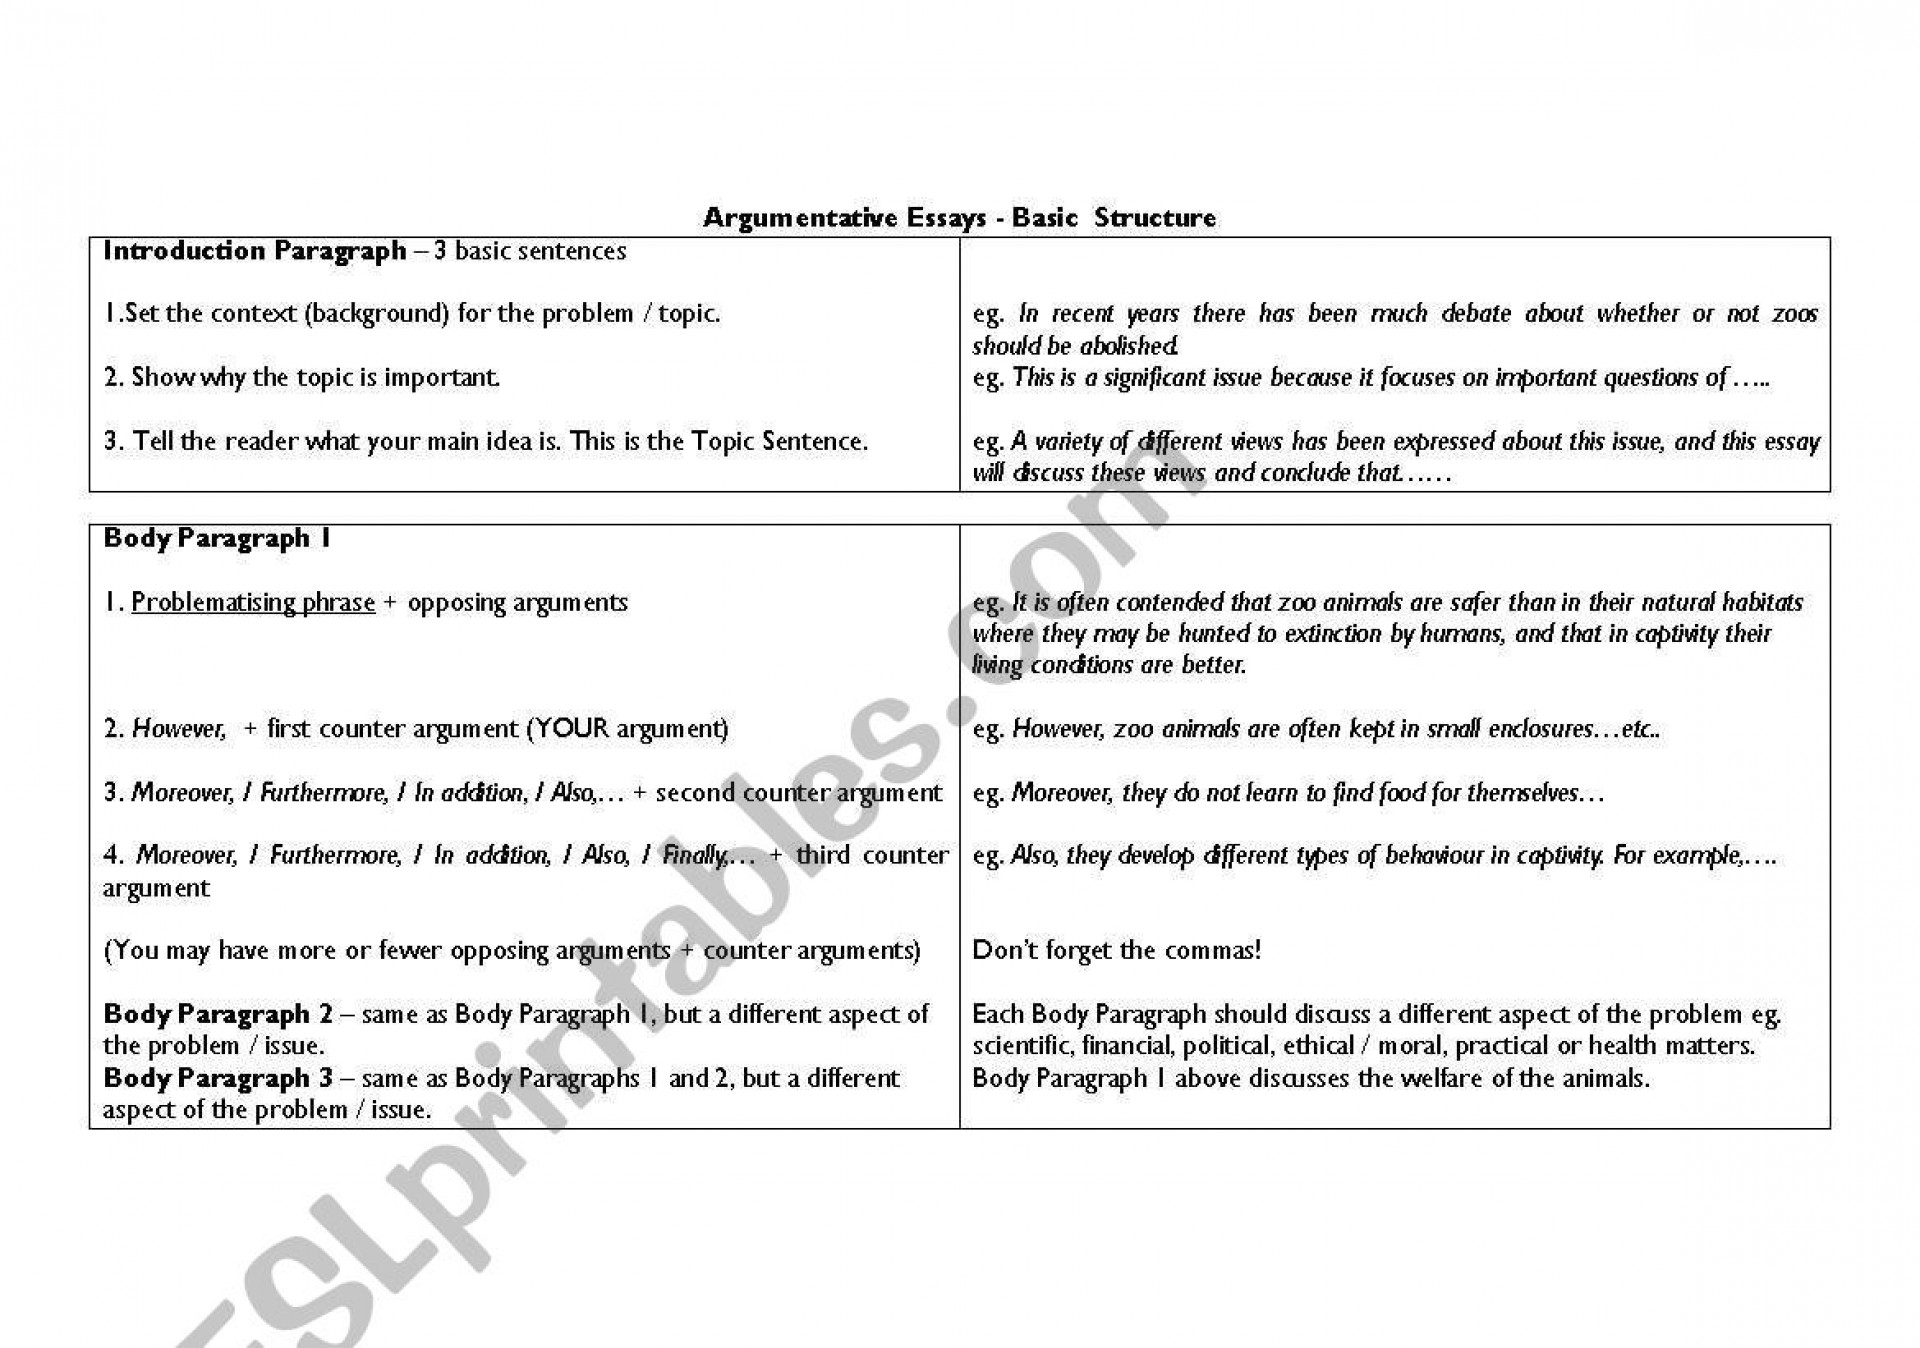 005 Structure Of An Argumentative Essay 548716 1 Writing Breathtaking Outline (advanced Module) Example 1920